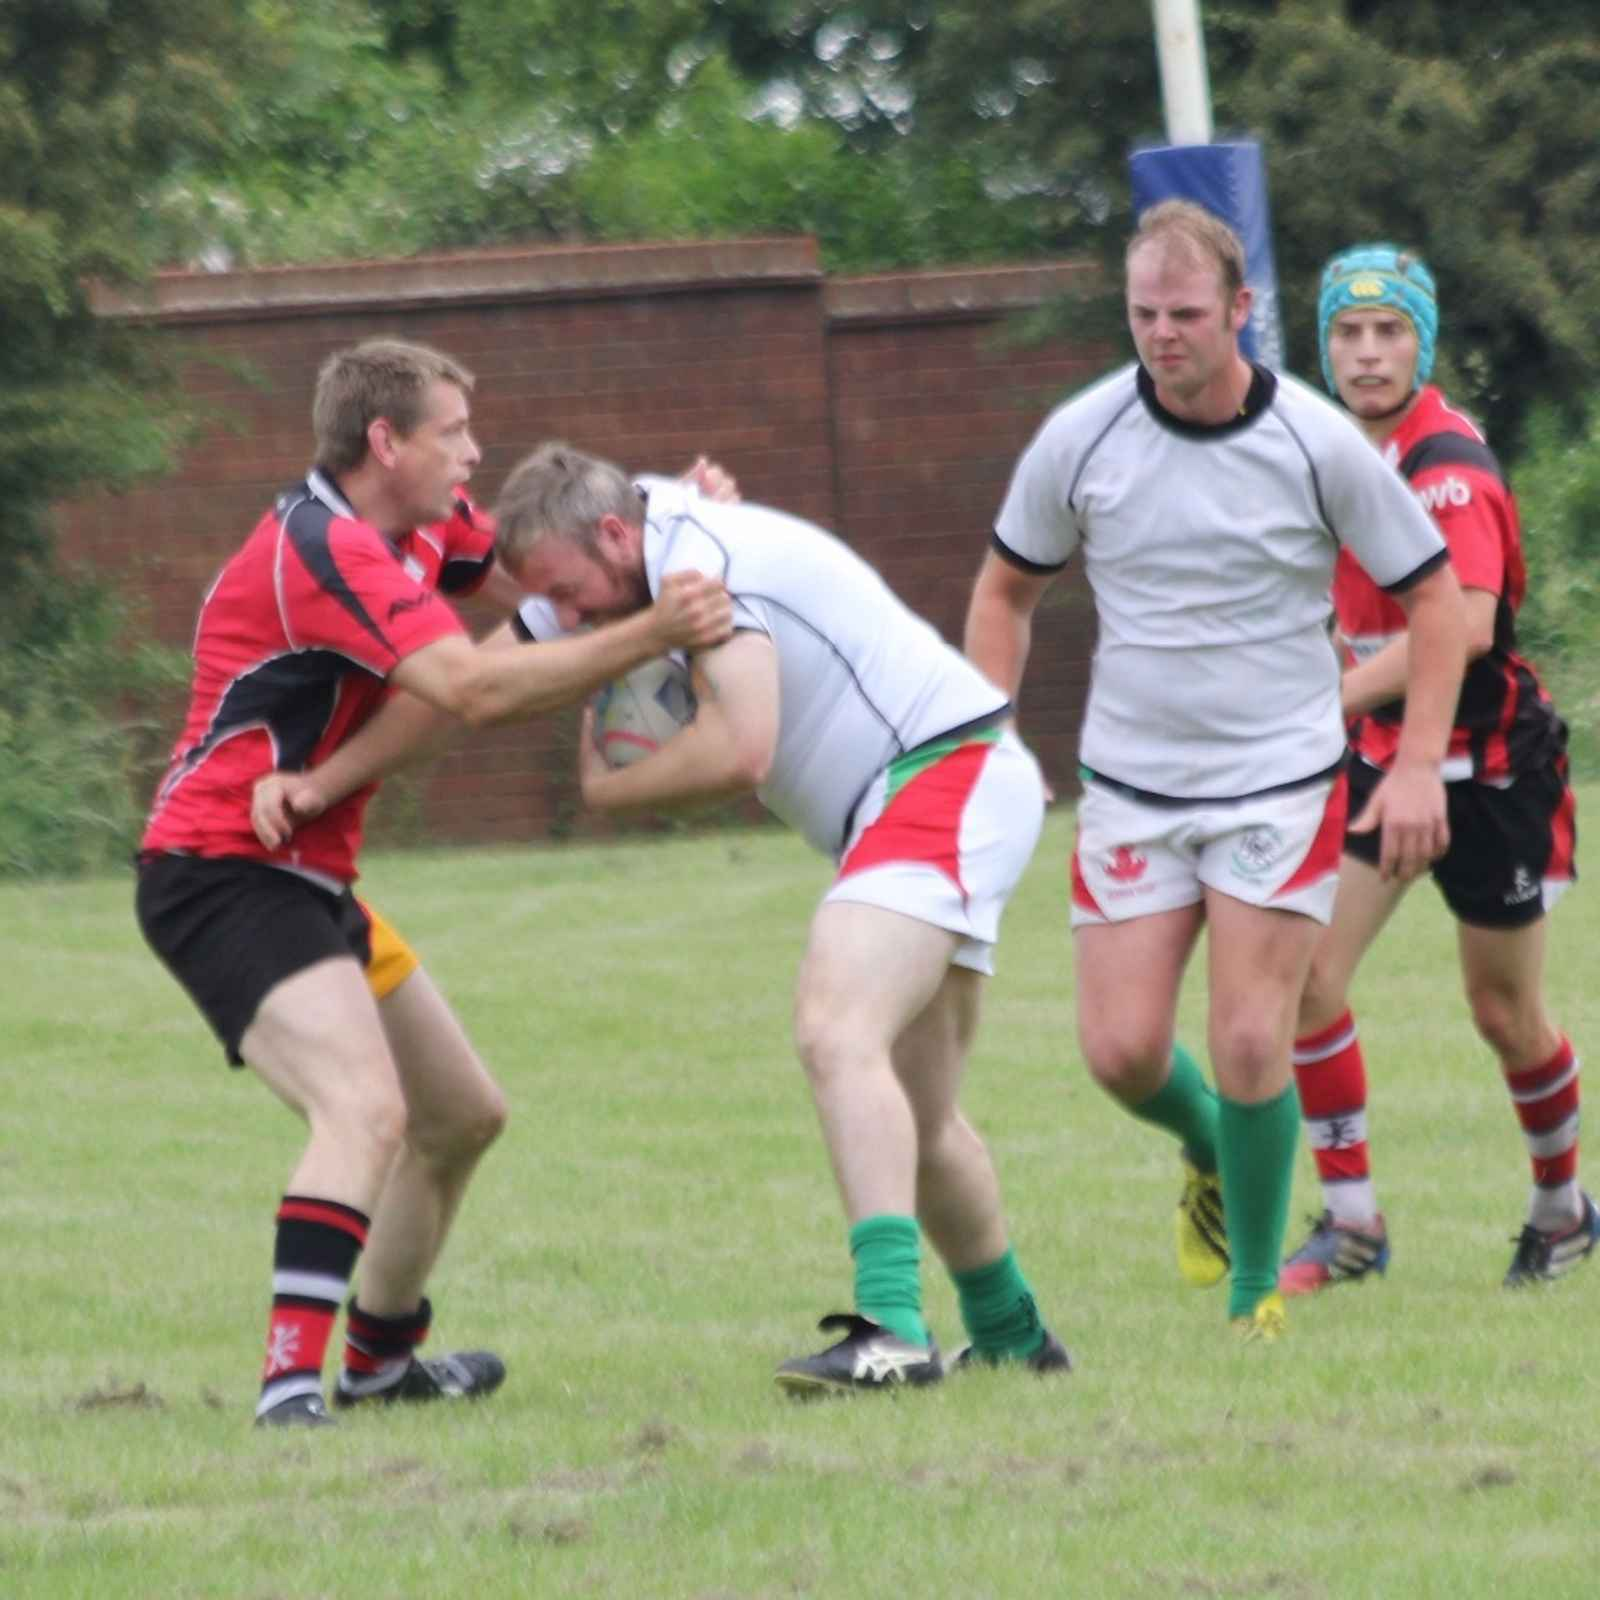 Burntwood Grasshoppers at Stafford 7s